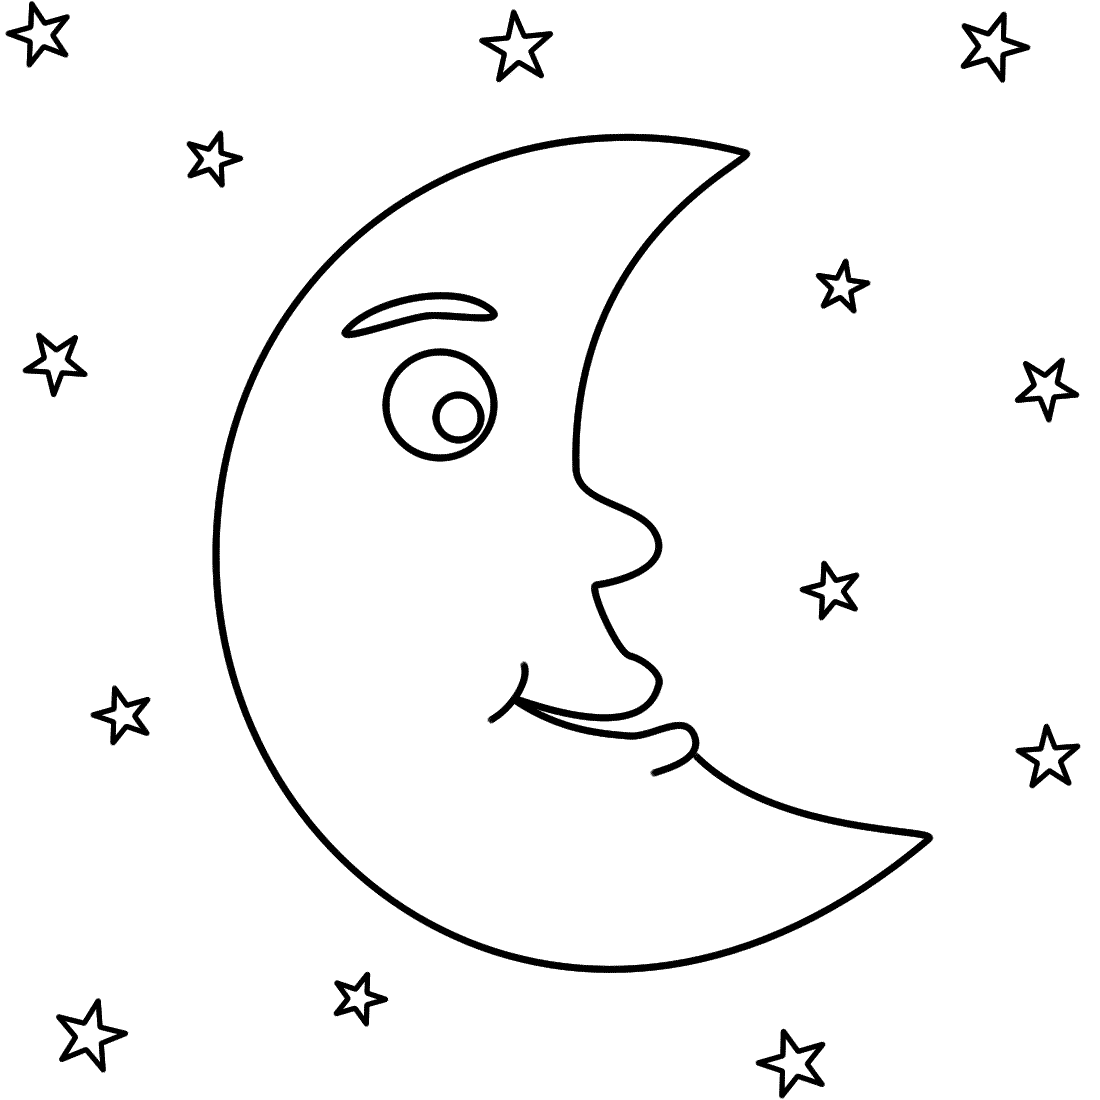 Moon coloring pages to download